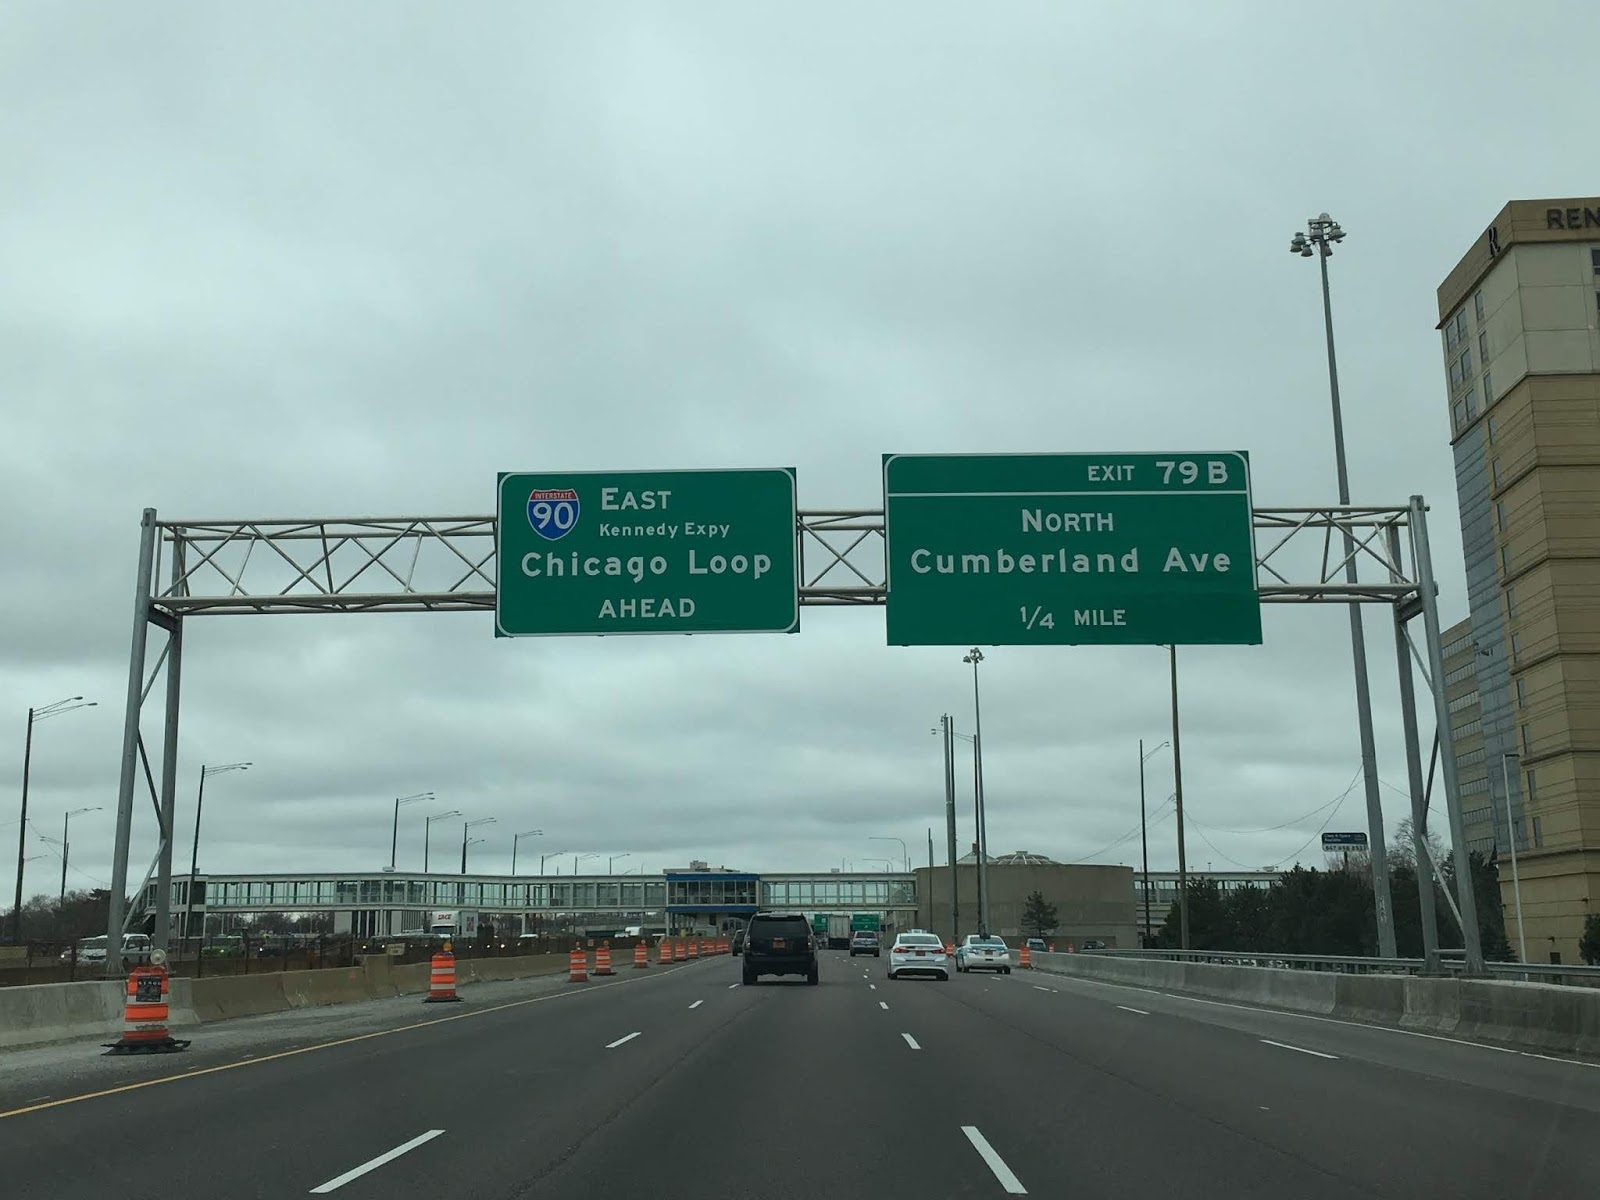 Kennedy Expressway (Interstates 90, 94 and 190)